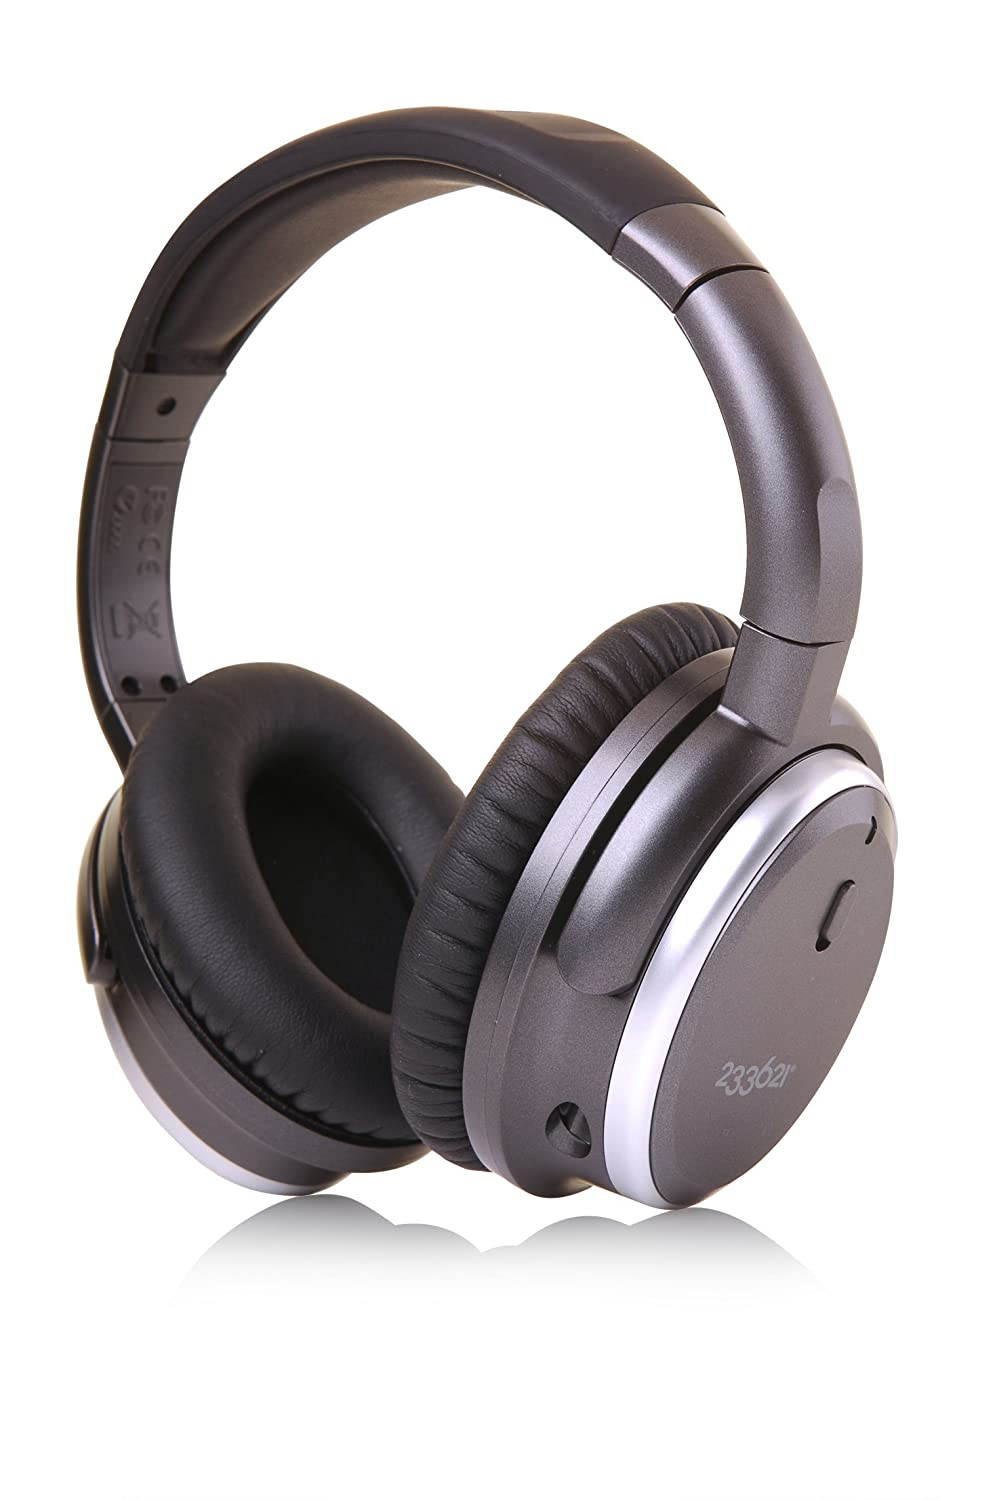 H501 Active Noise Cancelling Headphones